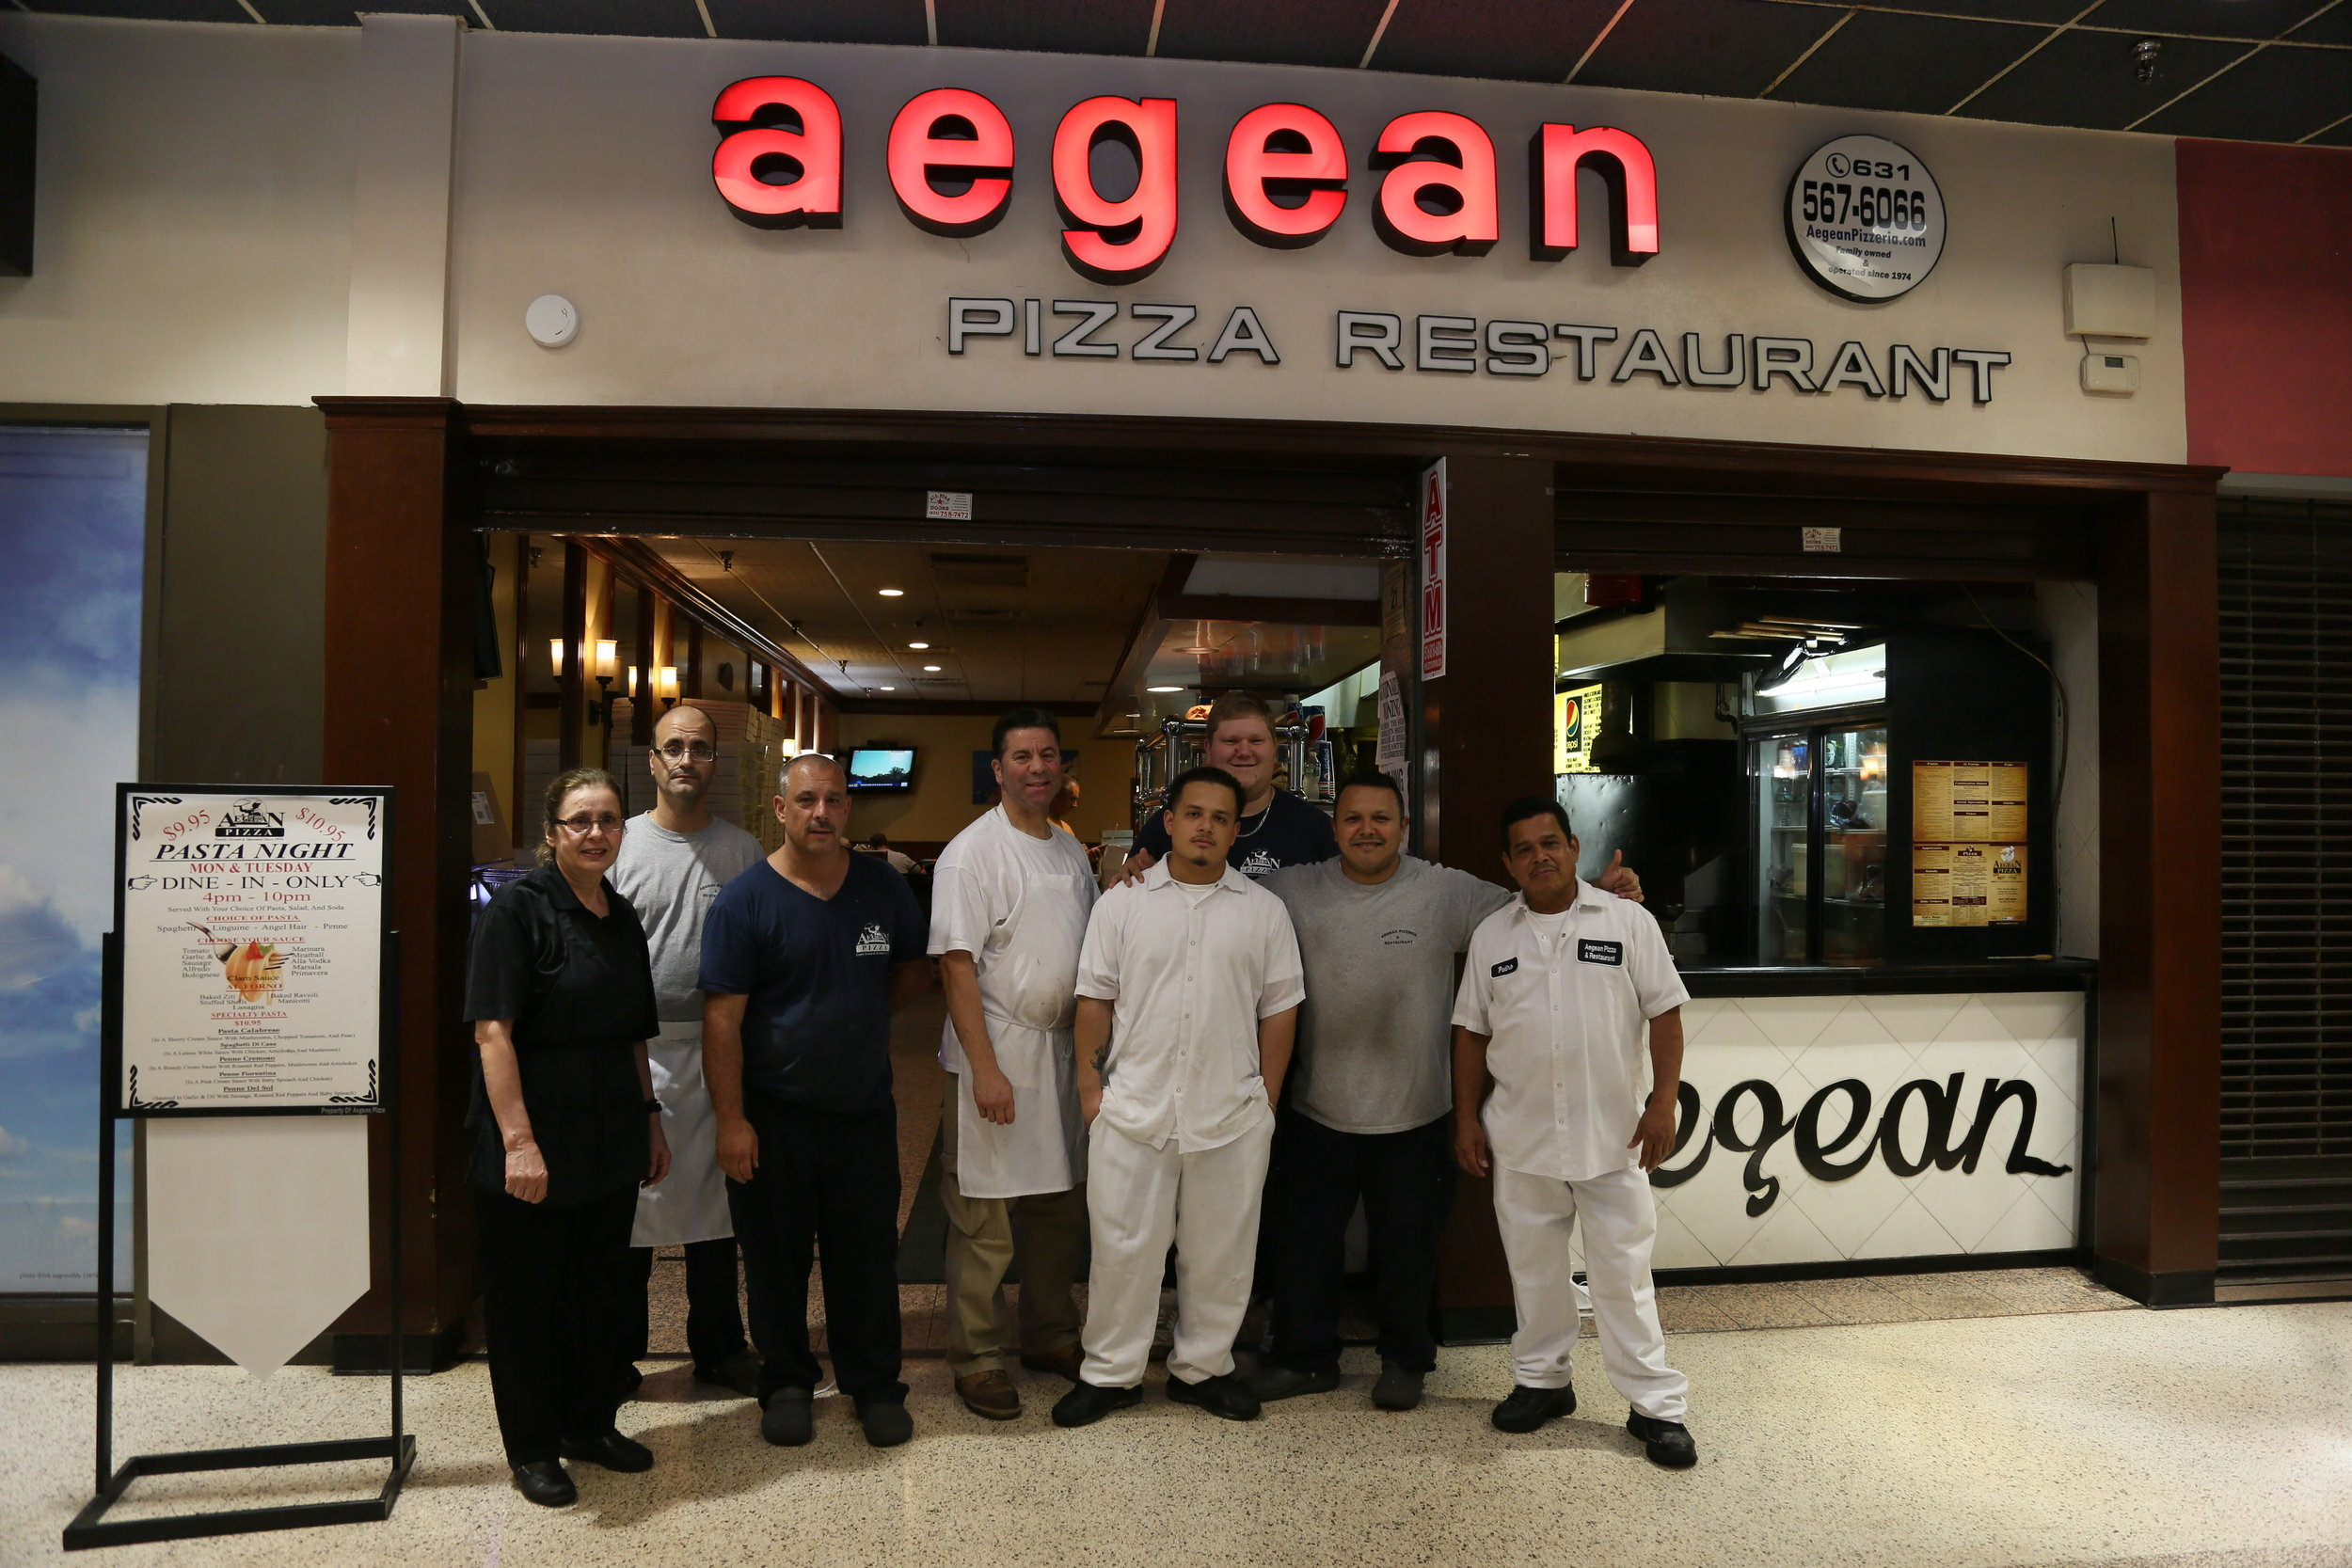 Aegean Pizzeria and Restaurant